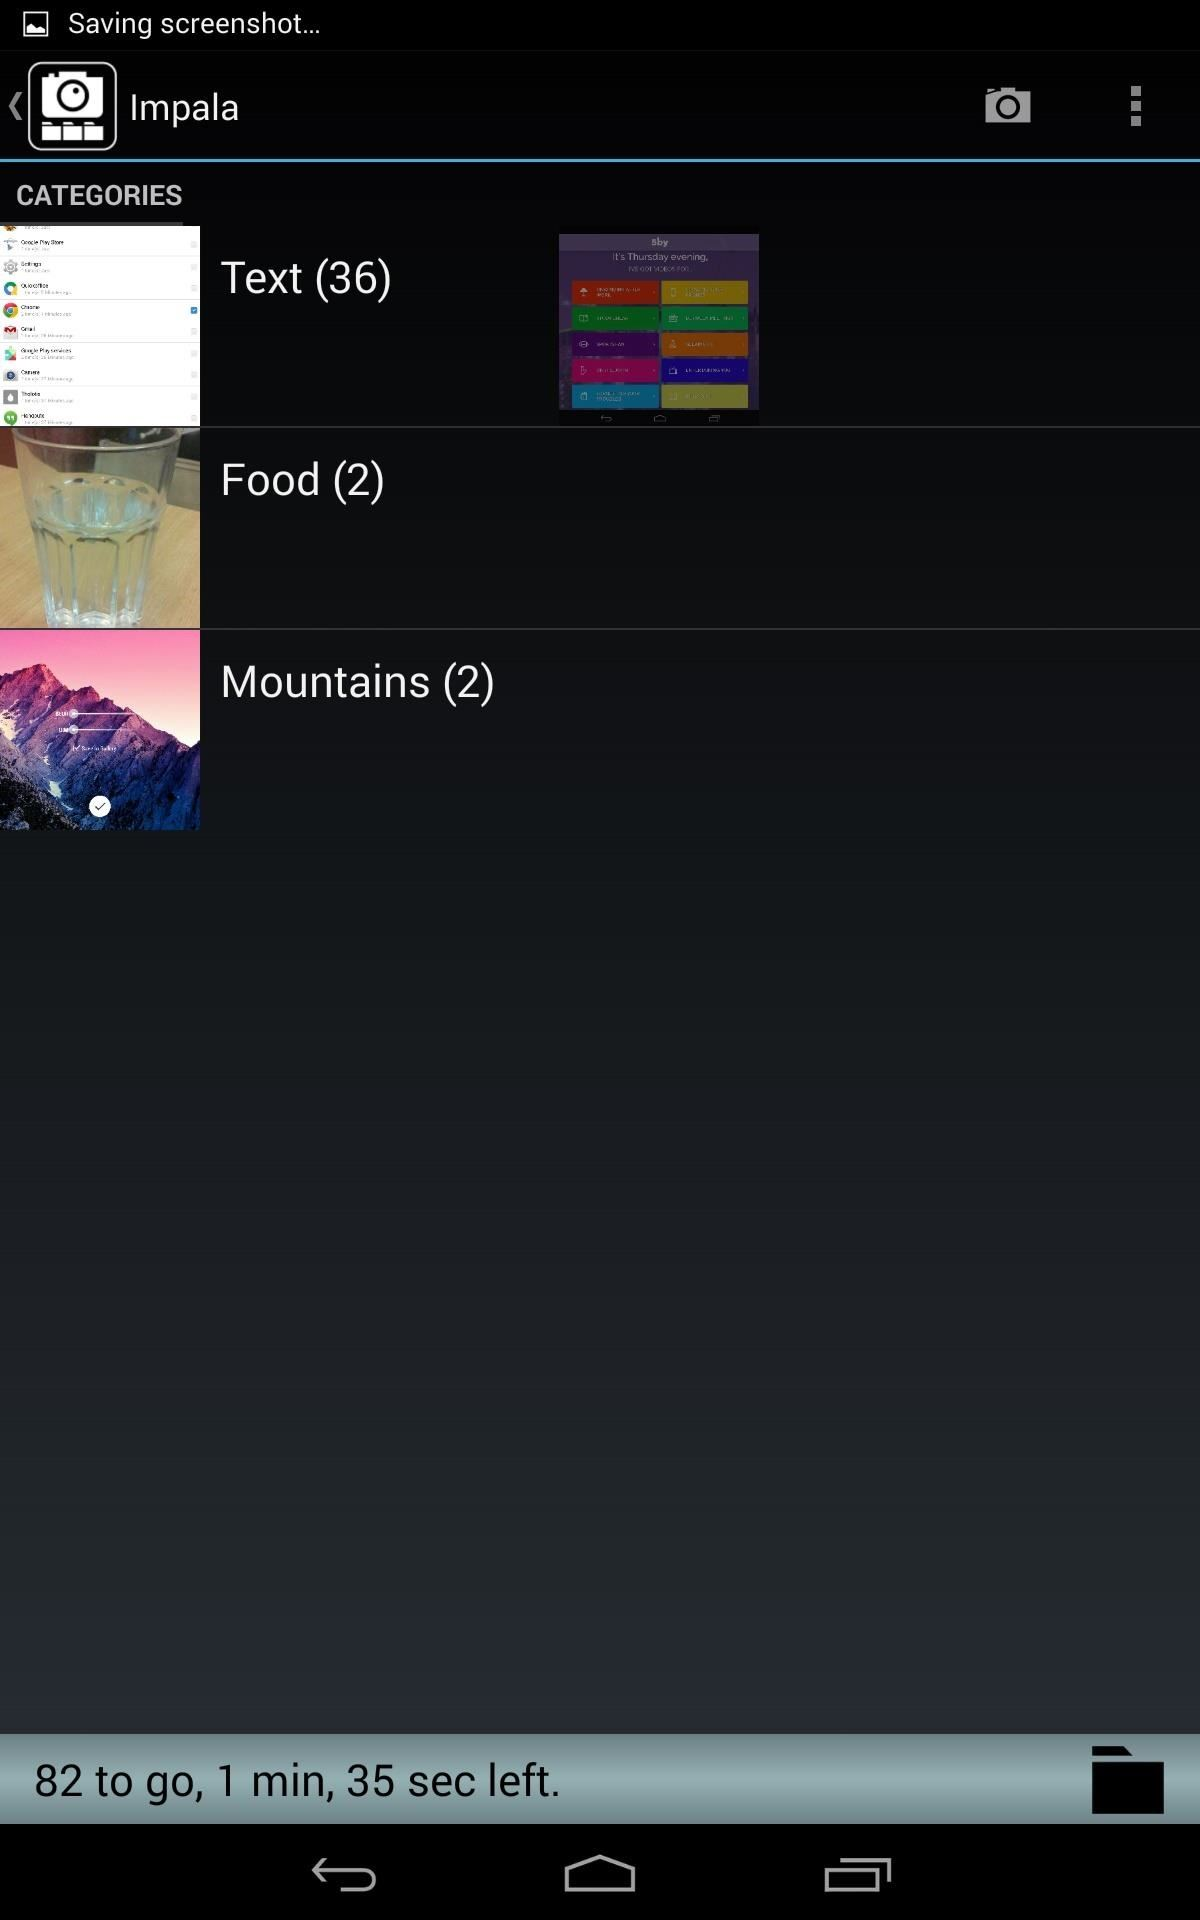 How to Categorize Old & New Photos Automatically by Topic on Your Nexus 7 for a Tidier Gallery